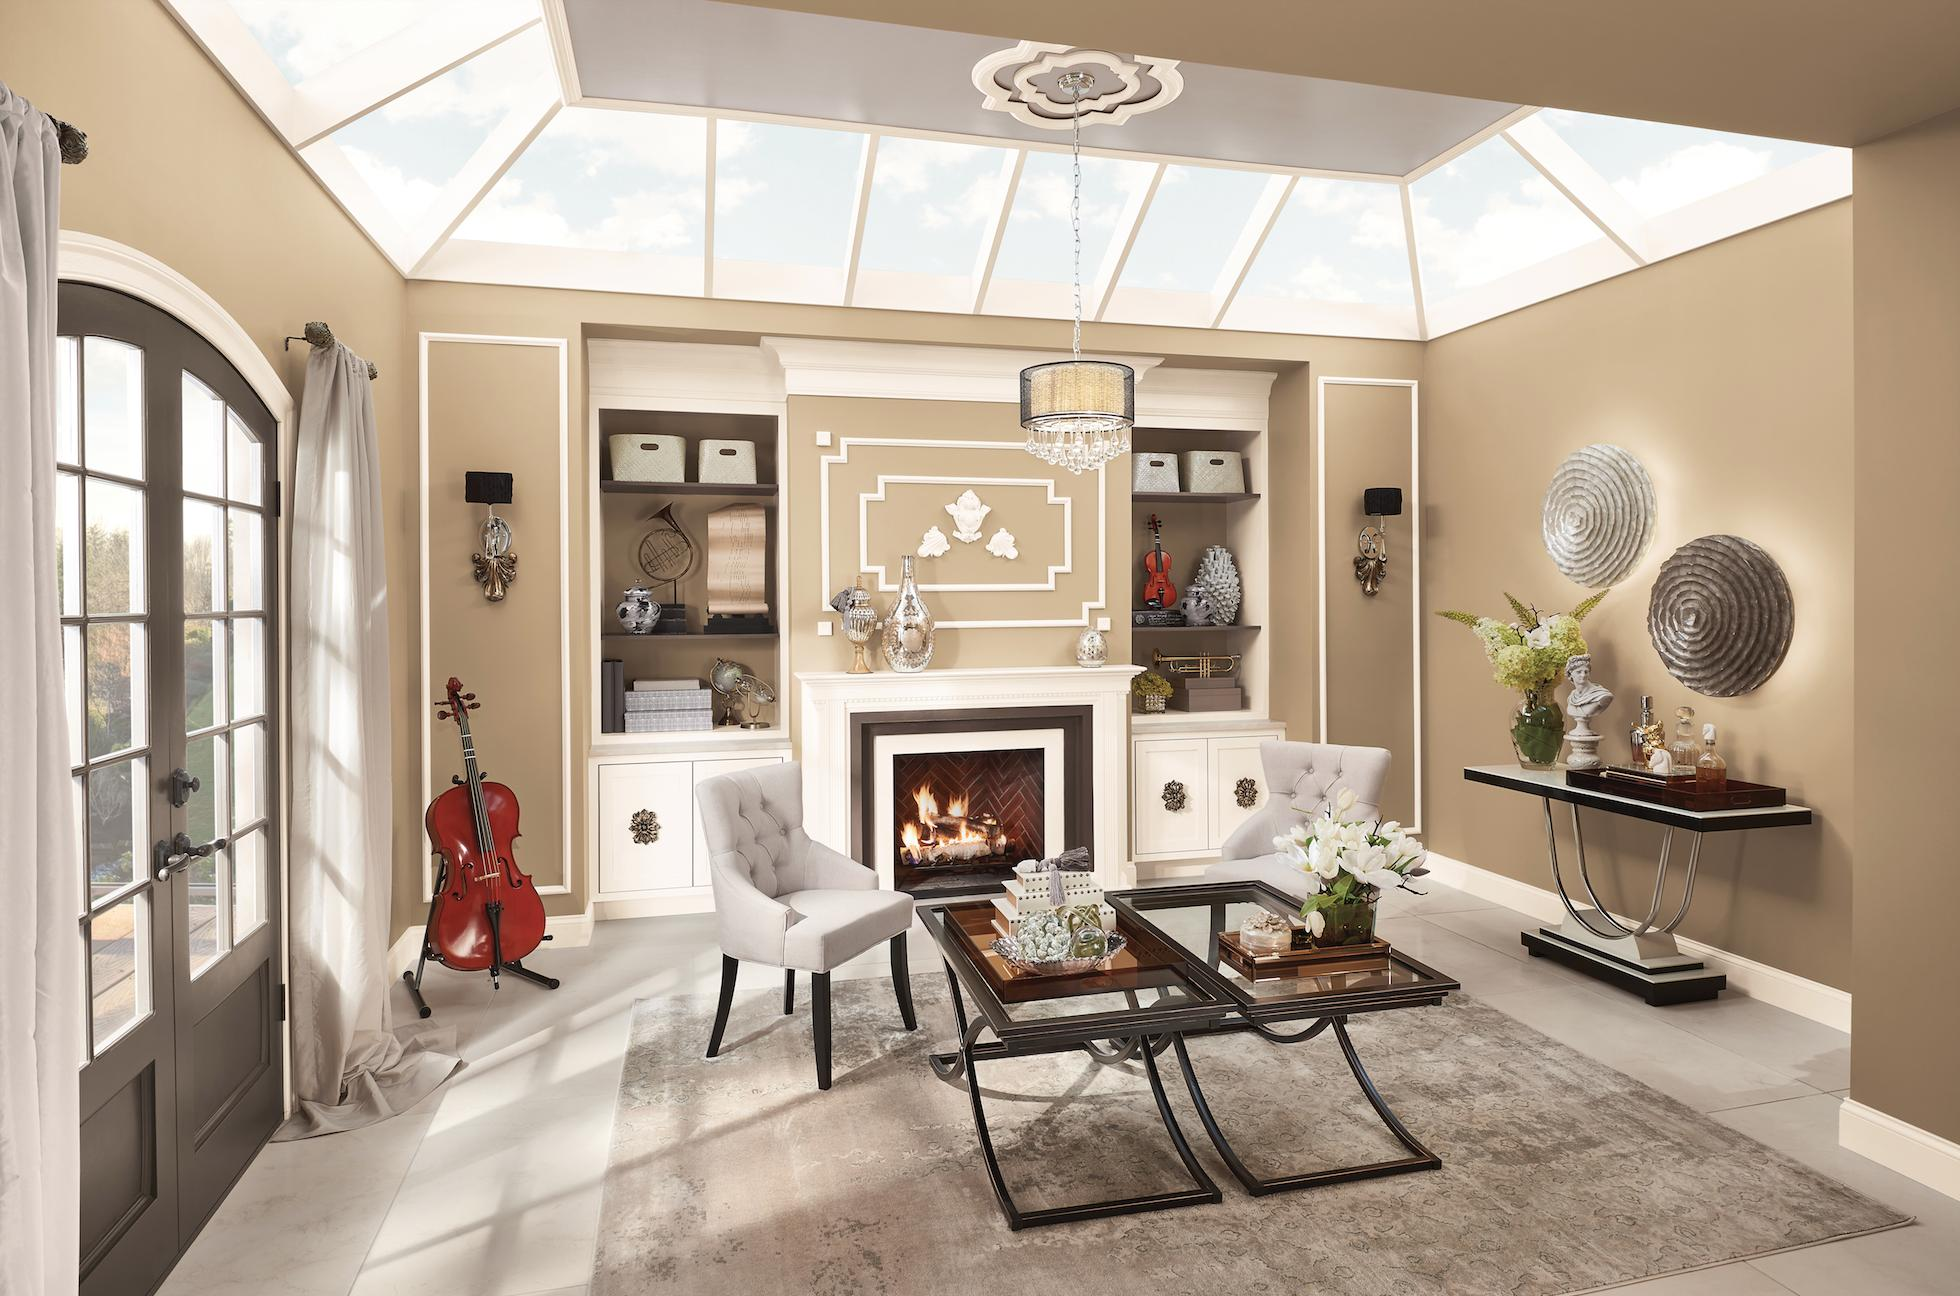 Popular Behr Paint Colors For Living Rooms These Are The Biggest Paint Color Trends For 2016